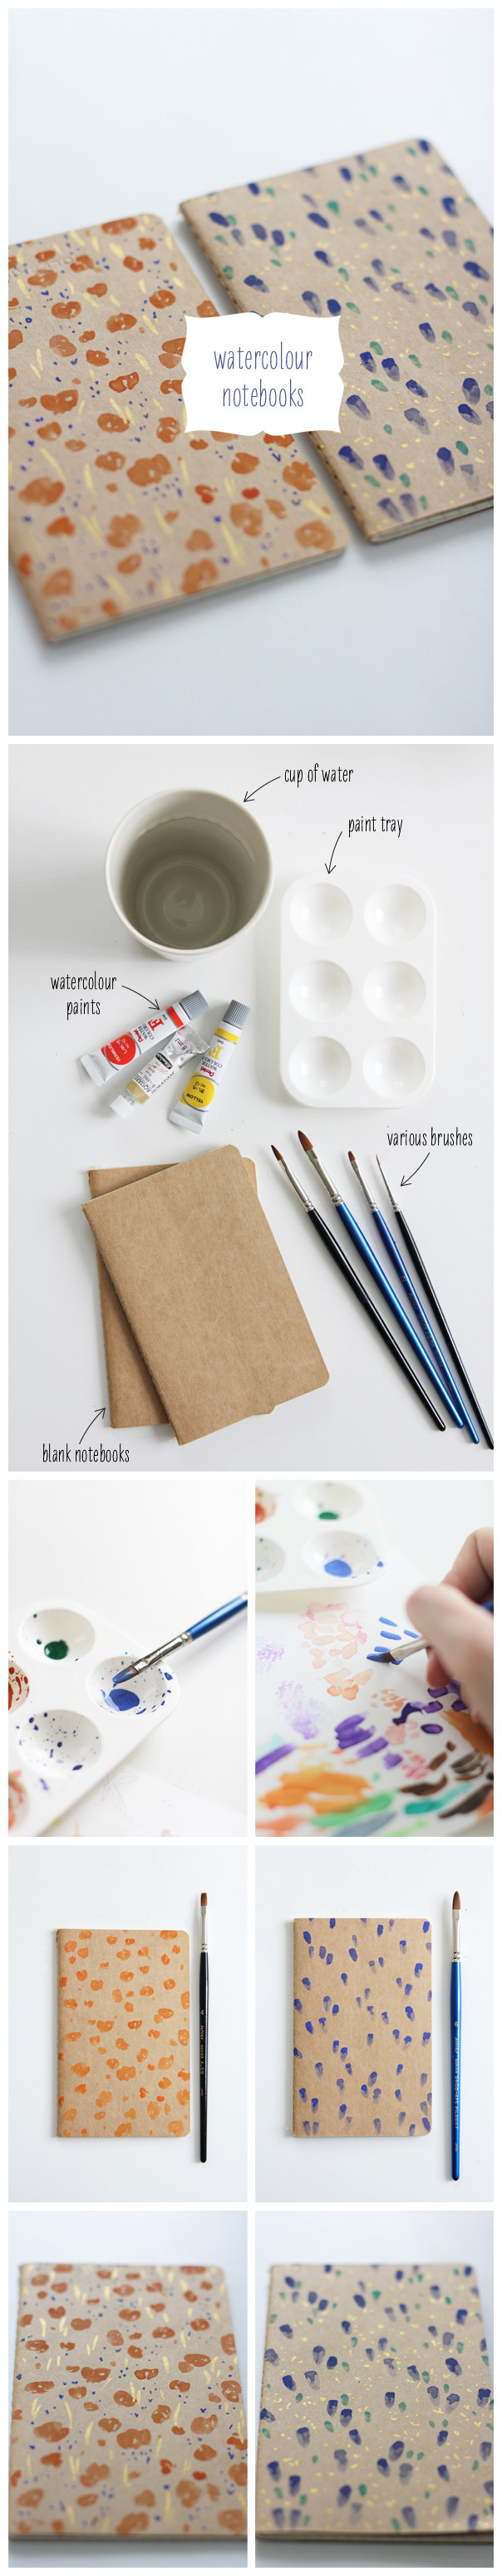 Watercolor book covers - Book Covers To Buy Their Own Simple Kraft Paper Cover Of The Book And